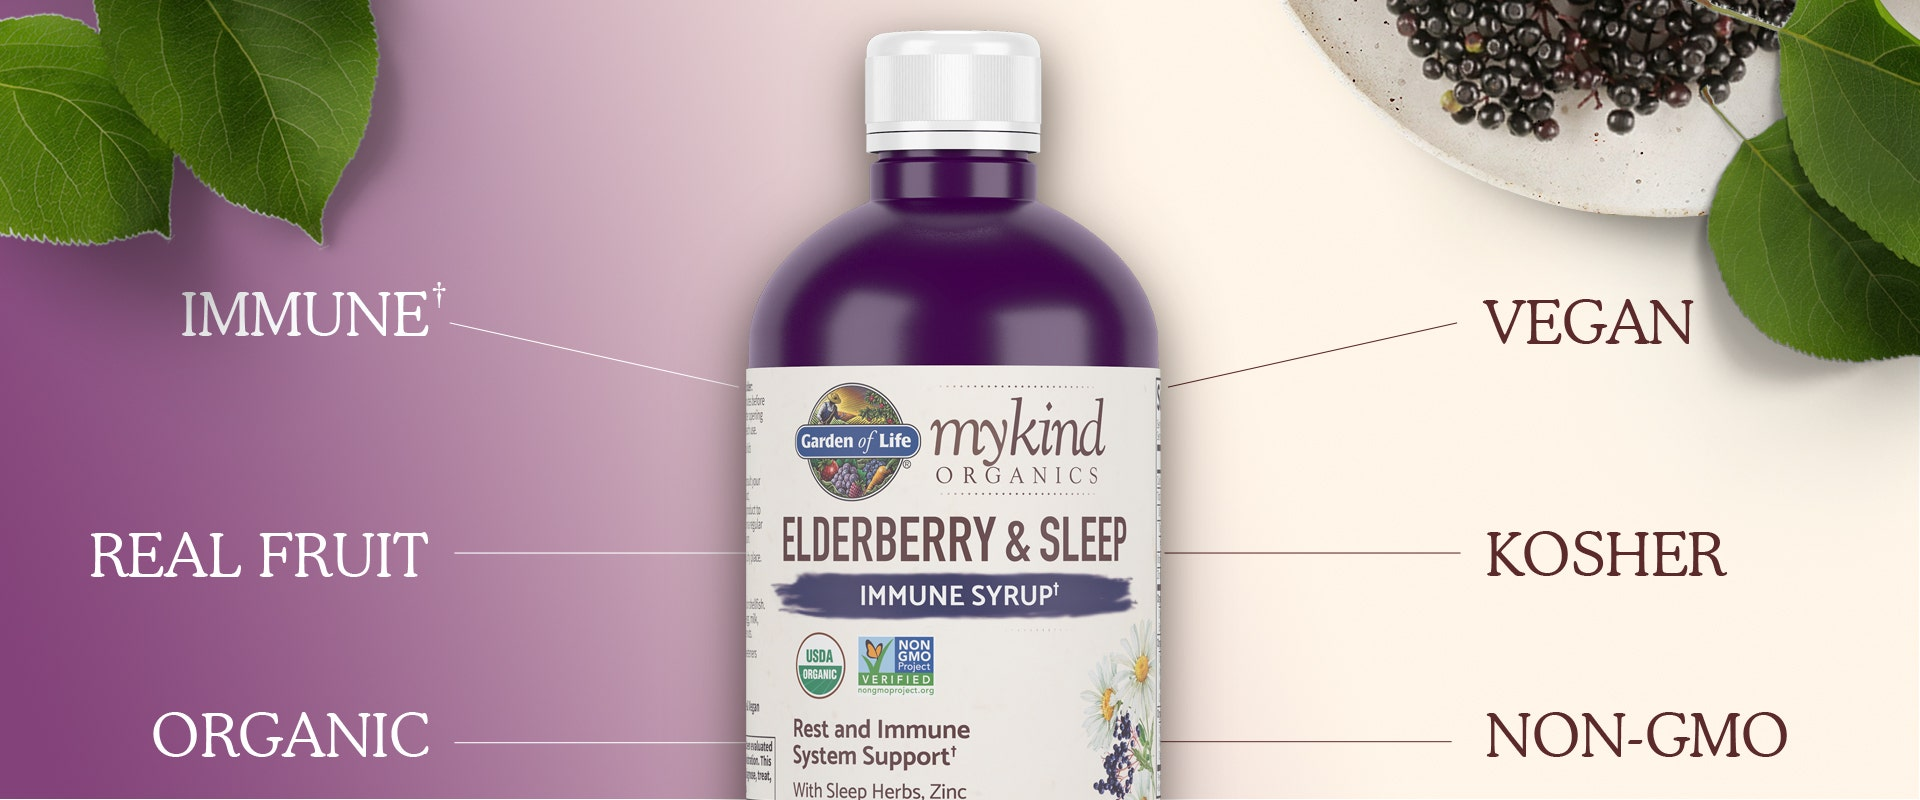 elderberry and sleep mykind Organics by Garden of Life